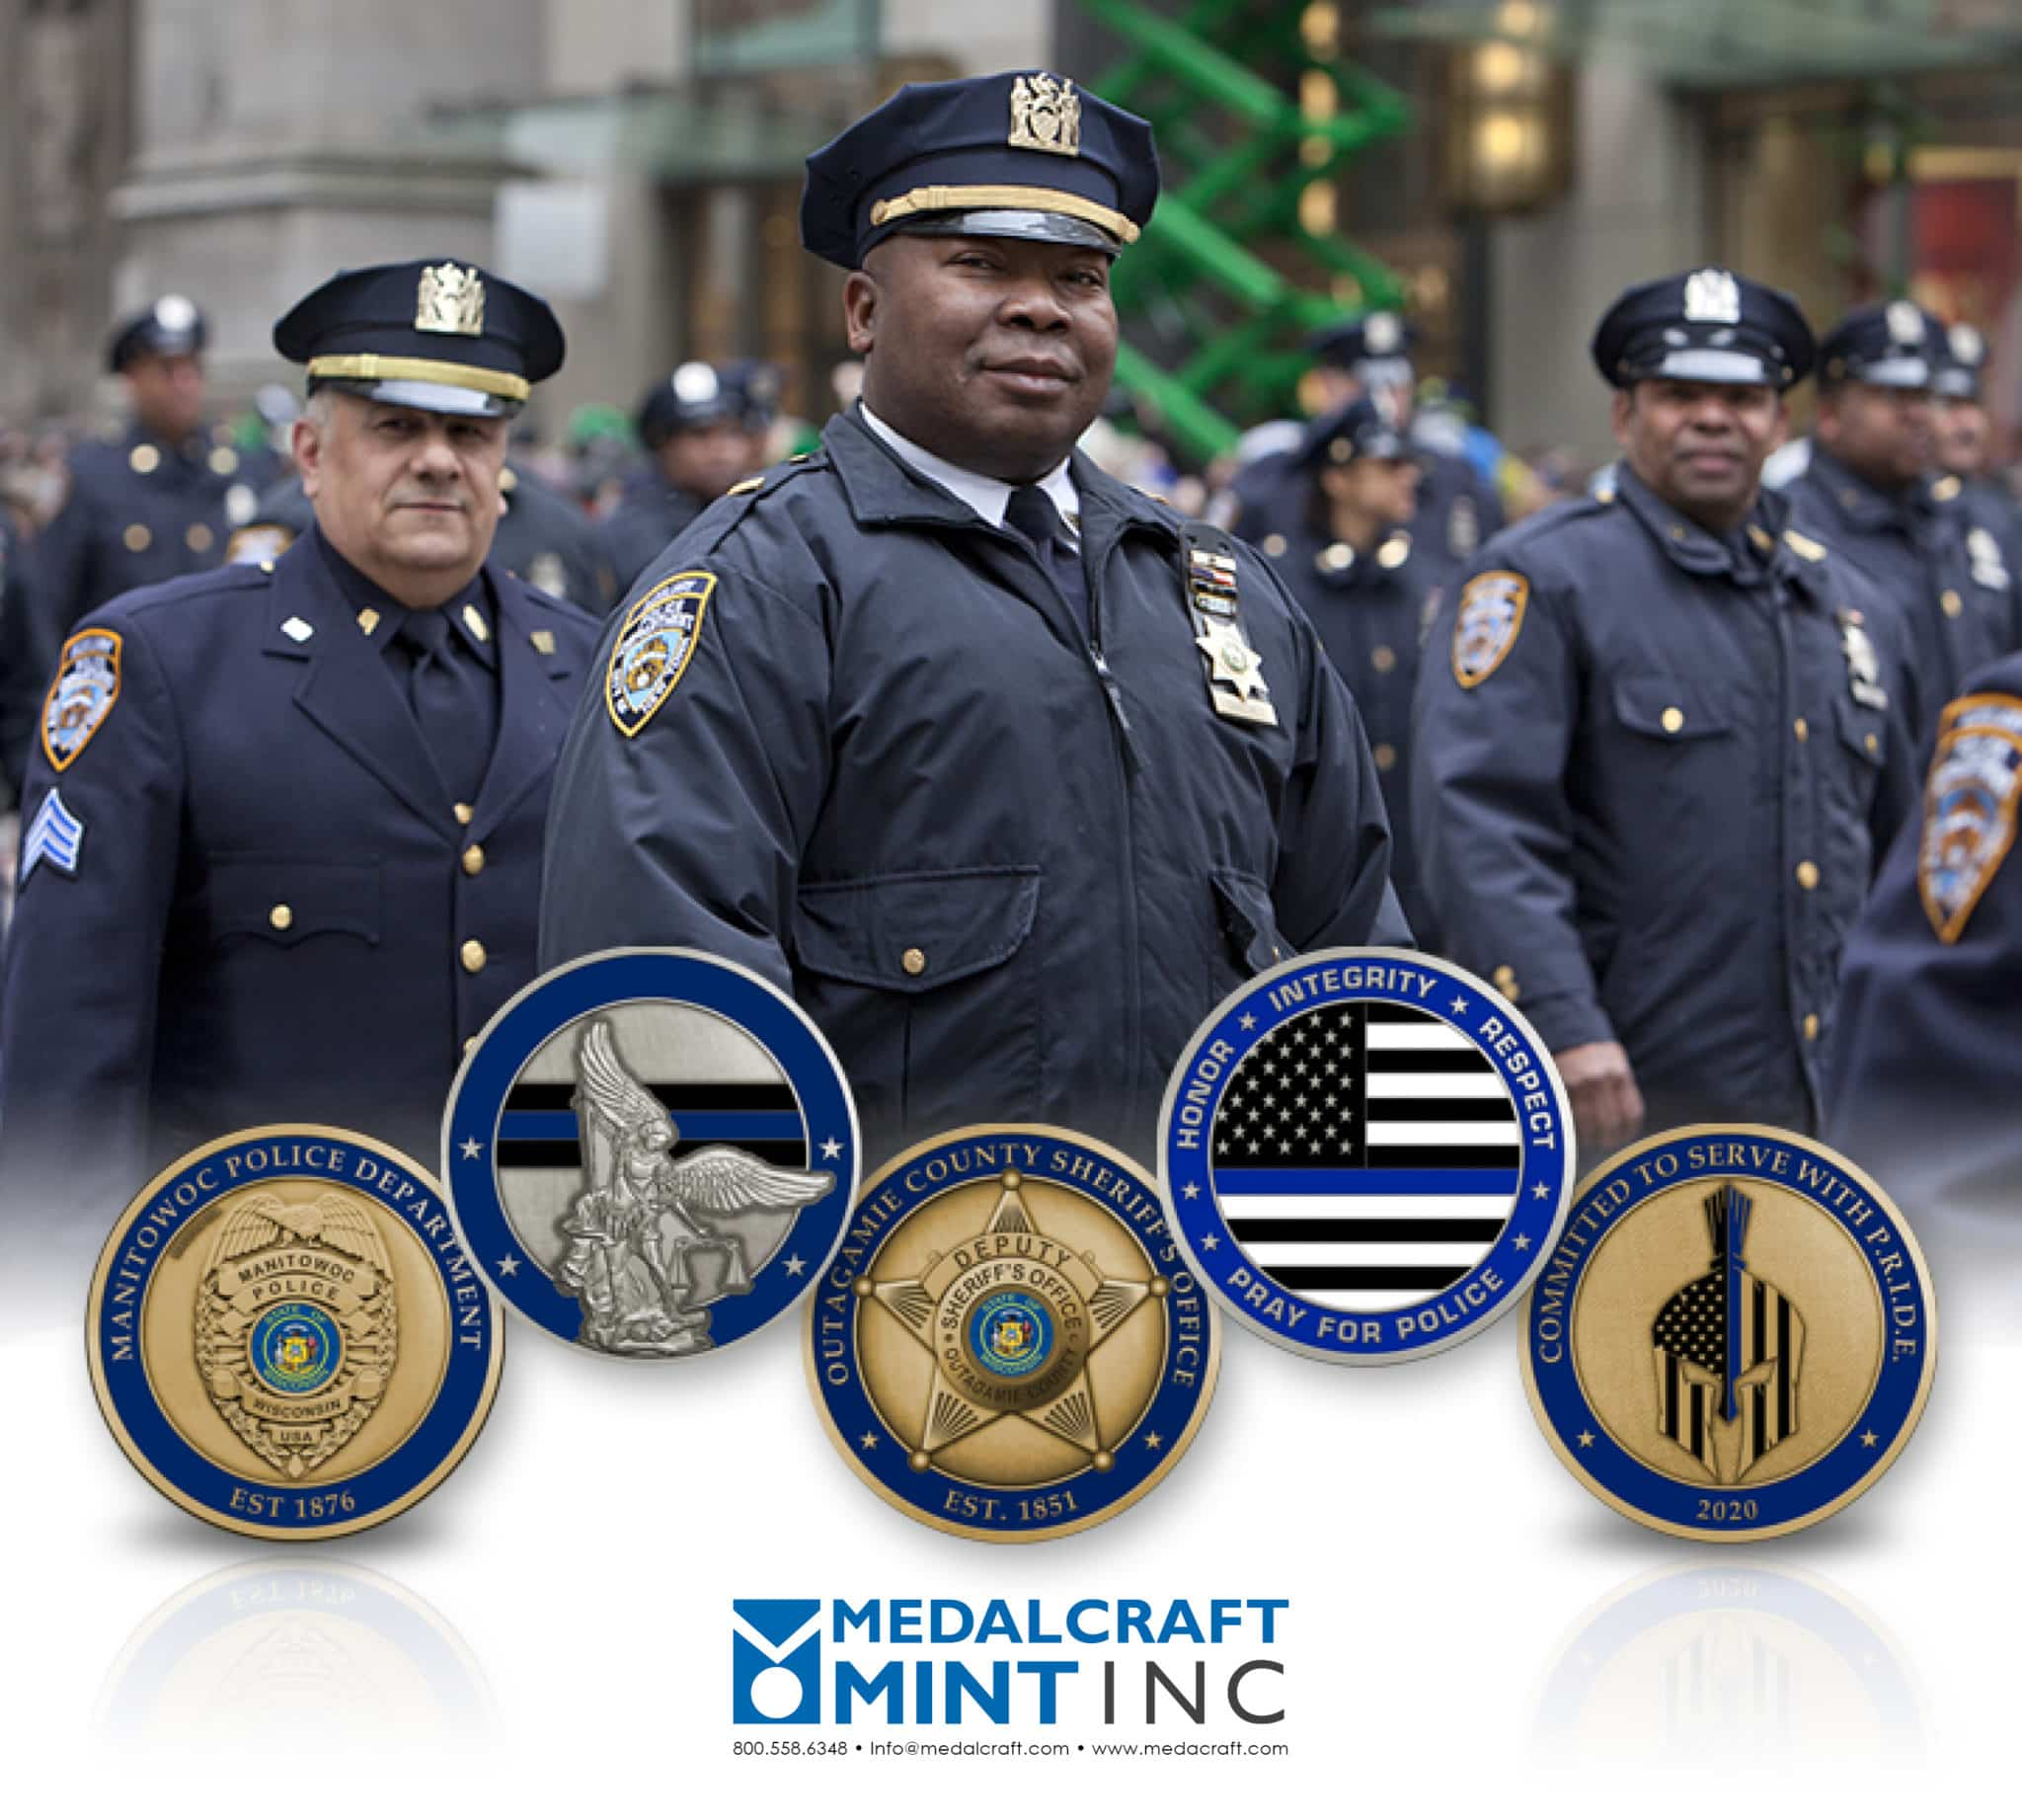 Make your law enforcement medals shine with custom die engraving